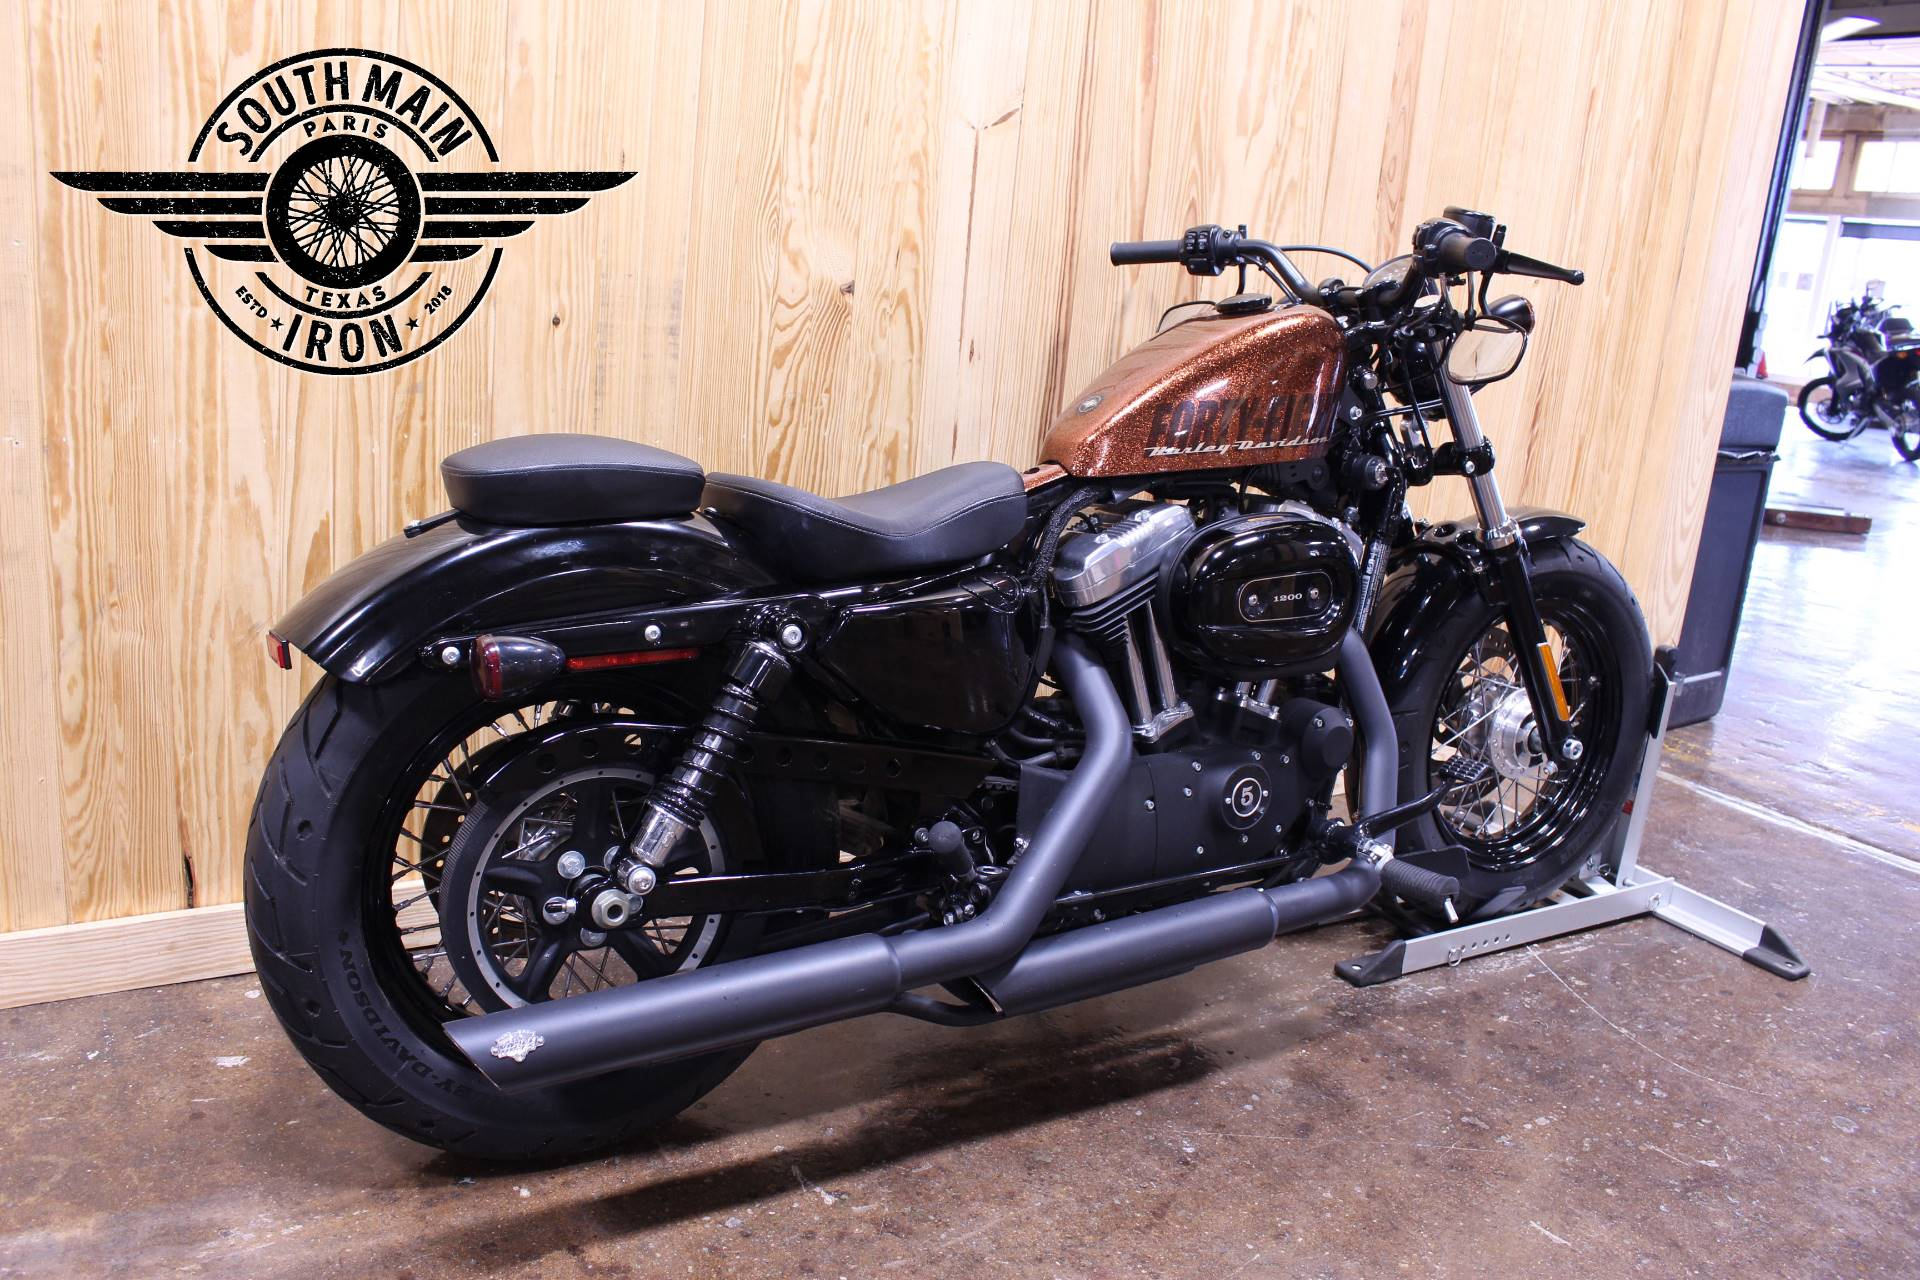 Used 2014 Harley Davidson Sportster Forty Eight Motorcycles In Paris Tx Har438020 Hard Candy Volcanic Orange Flake